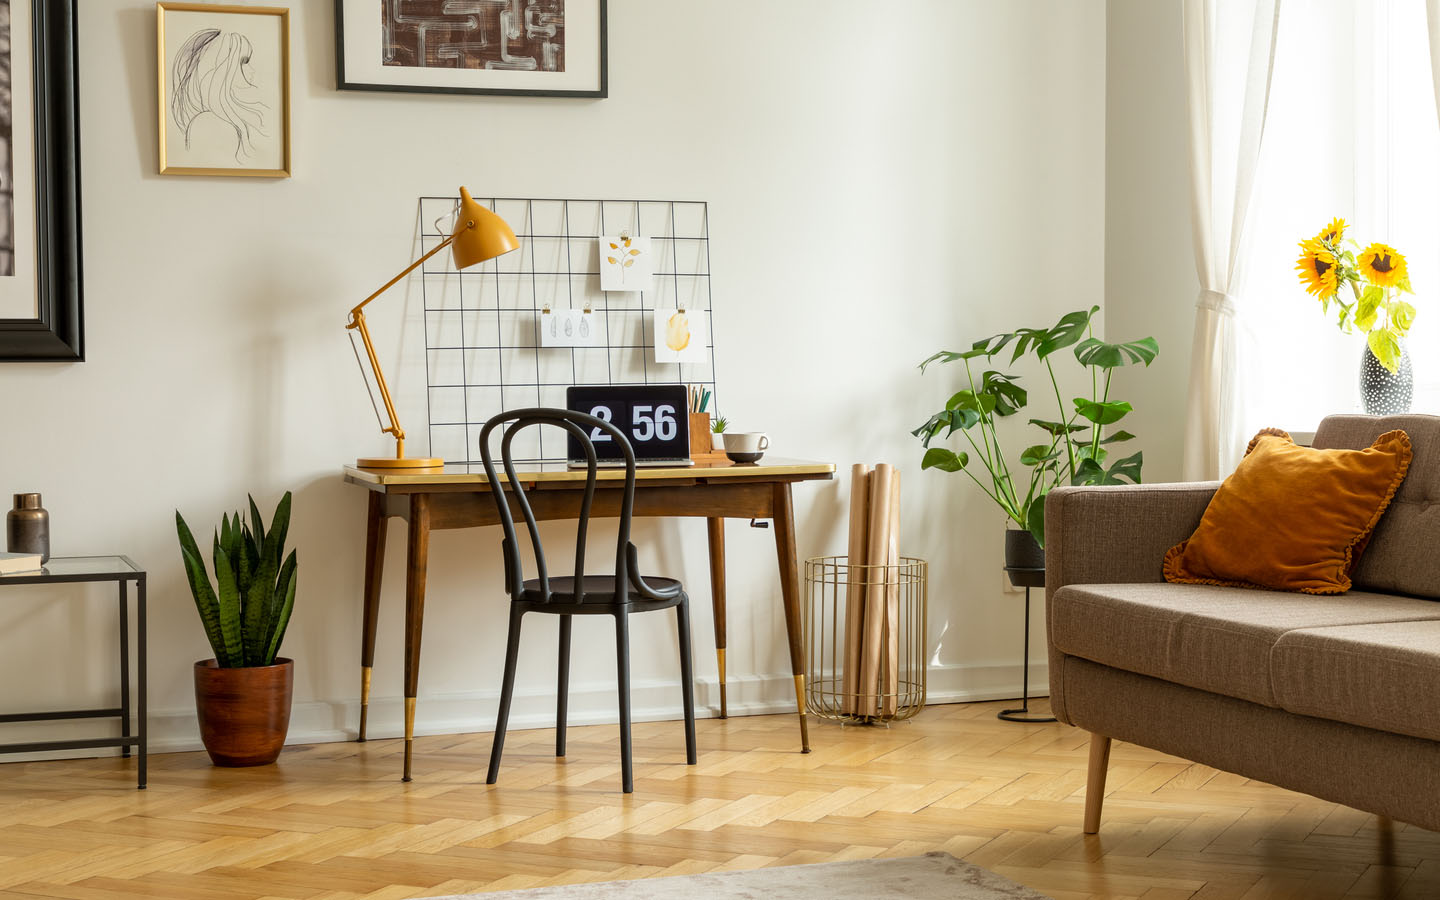 Having a work desk in your family room lets you manage your home office